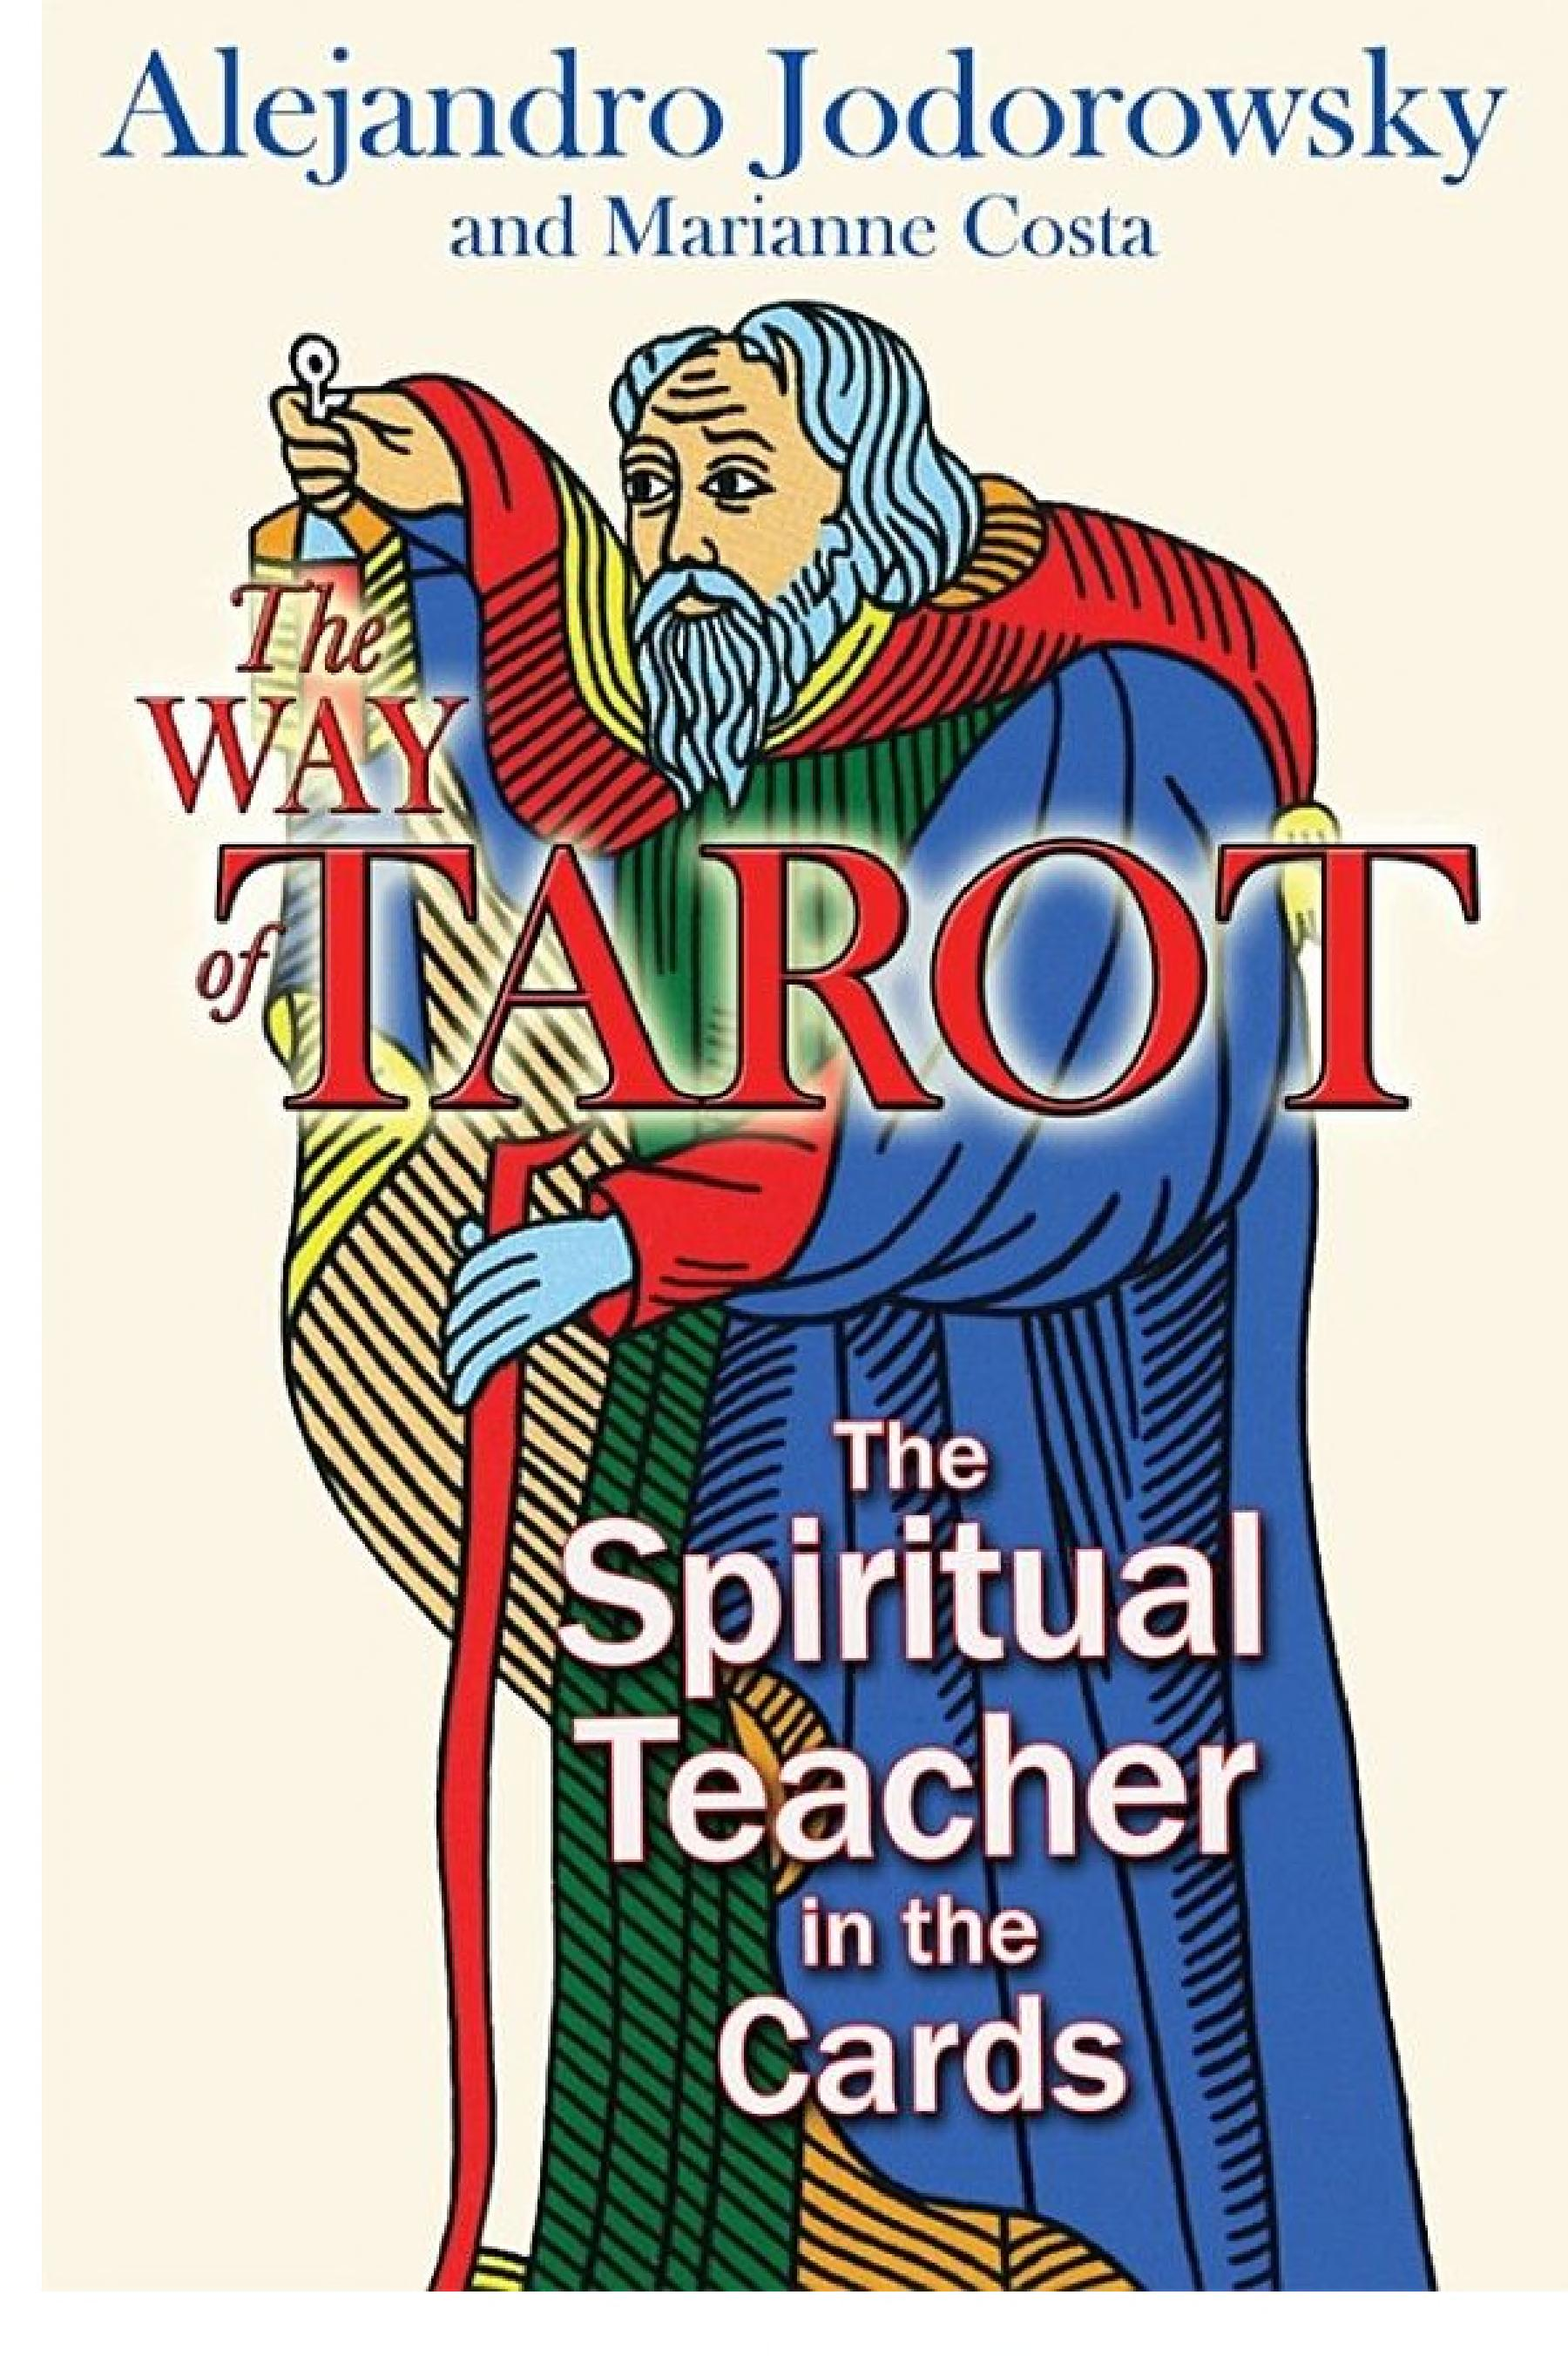 The Way of Tarot